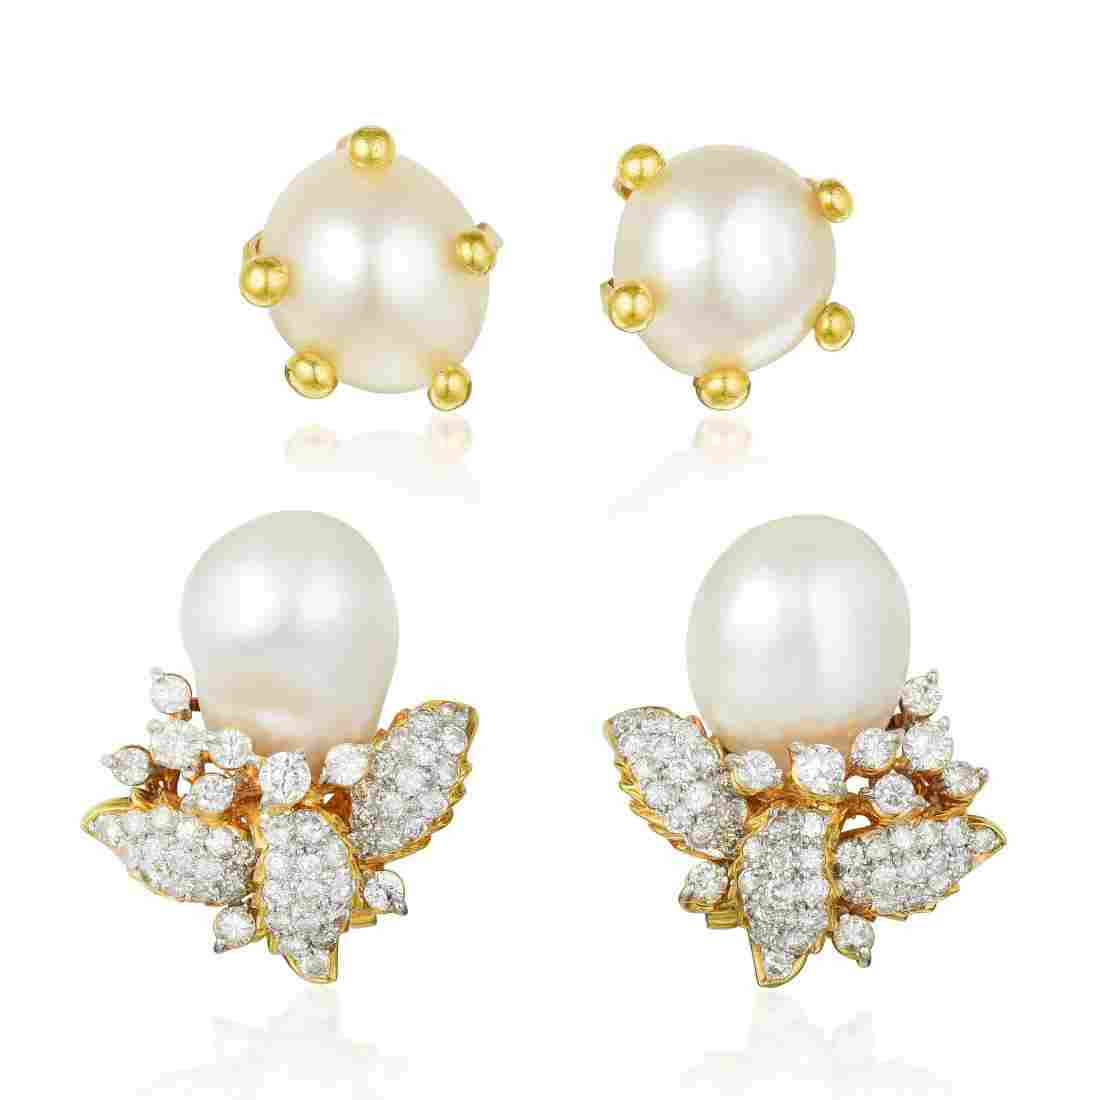 A Group of Baroque Cultured Pearl Earrings